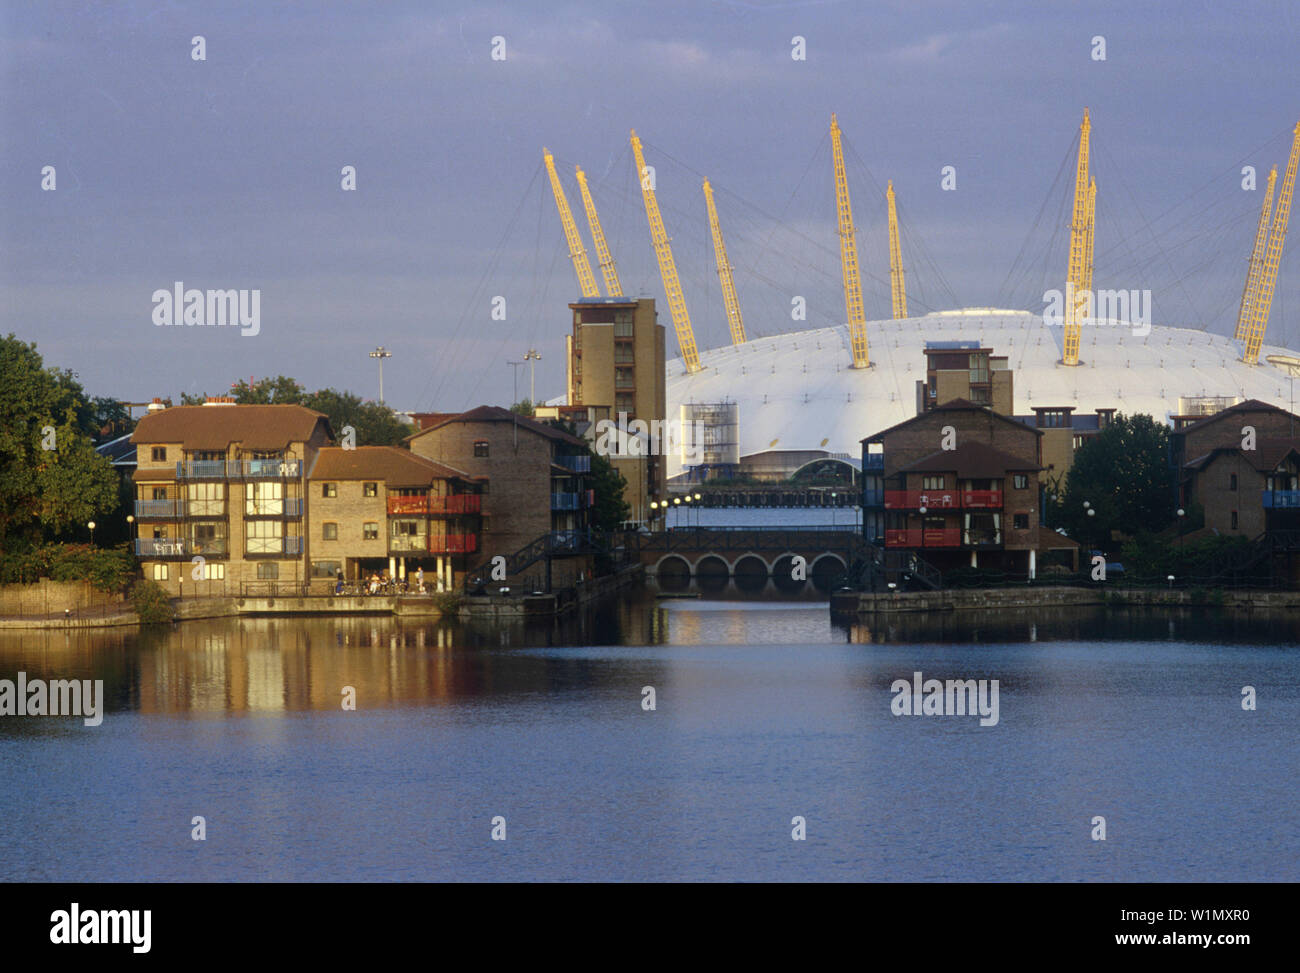 Millennium Dome mit Siedlung in, Docklands, London England - Stock Image